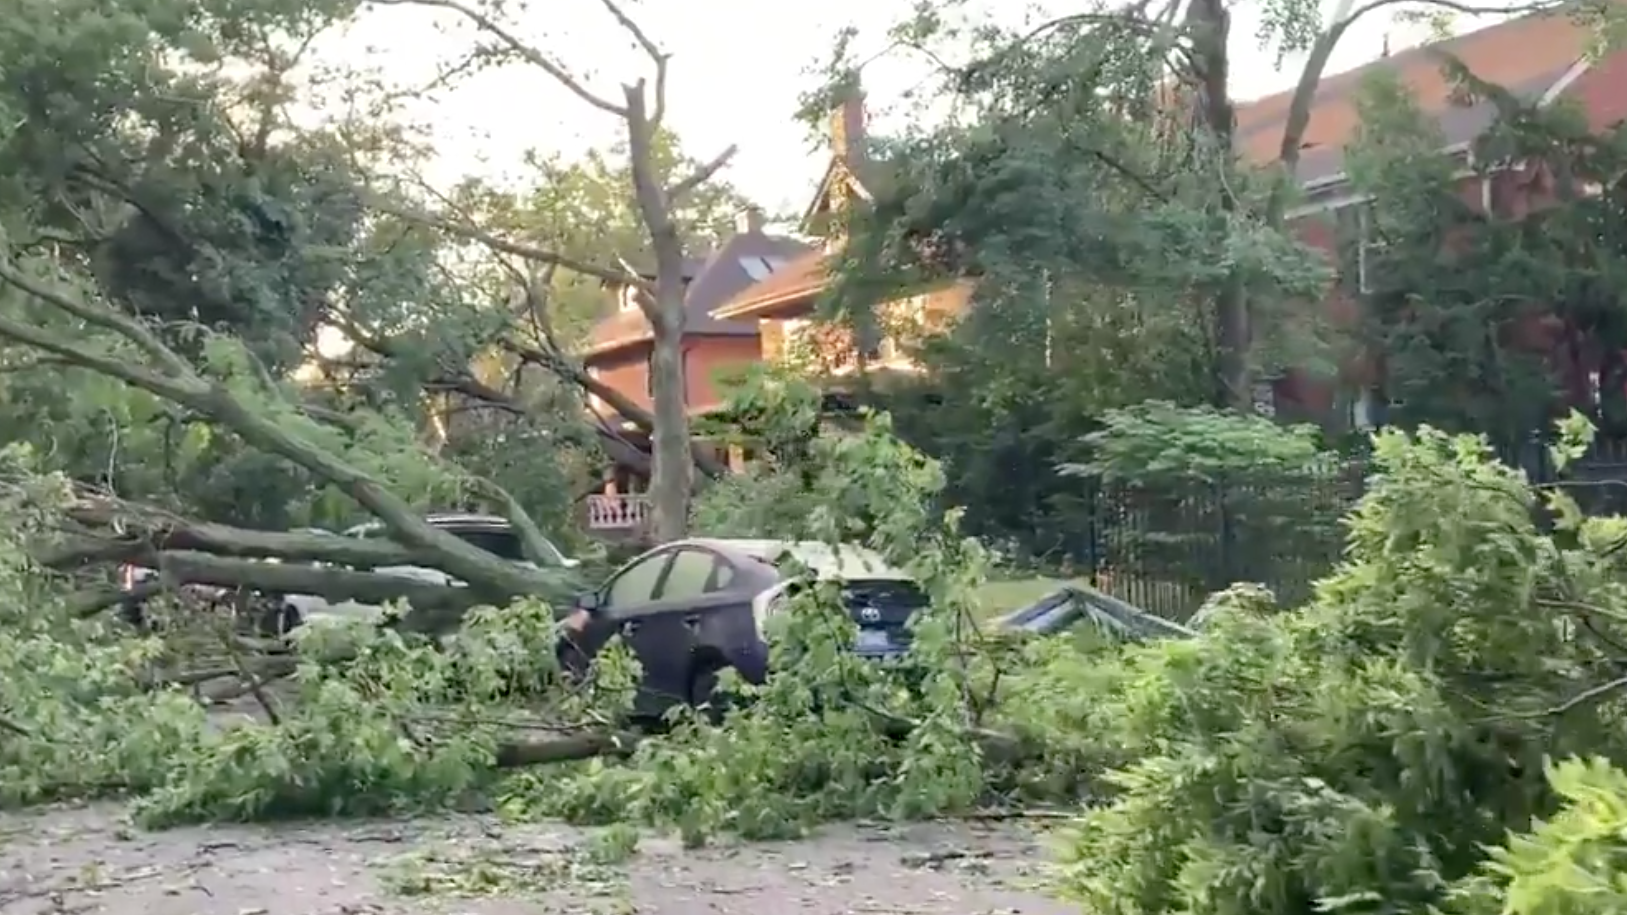 National Weather Service Confirms Tornado Touches Down in Chicago Area